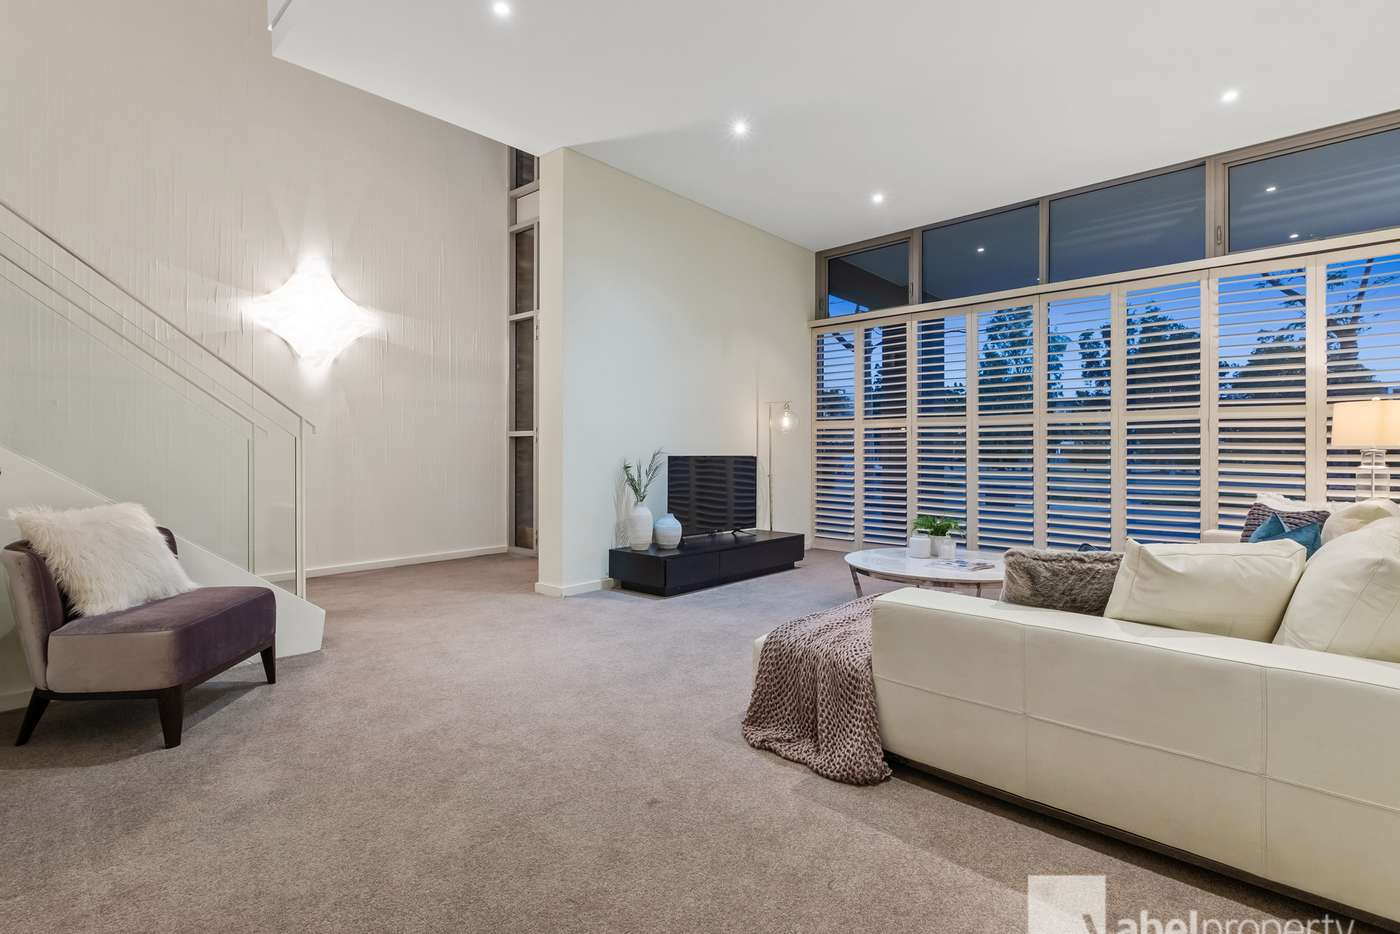 Sixth view of Homely house listing, 42 The Circus, Burswood WA 6100